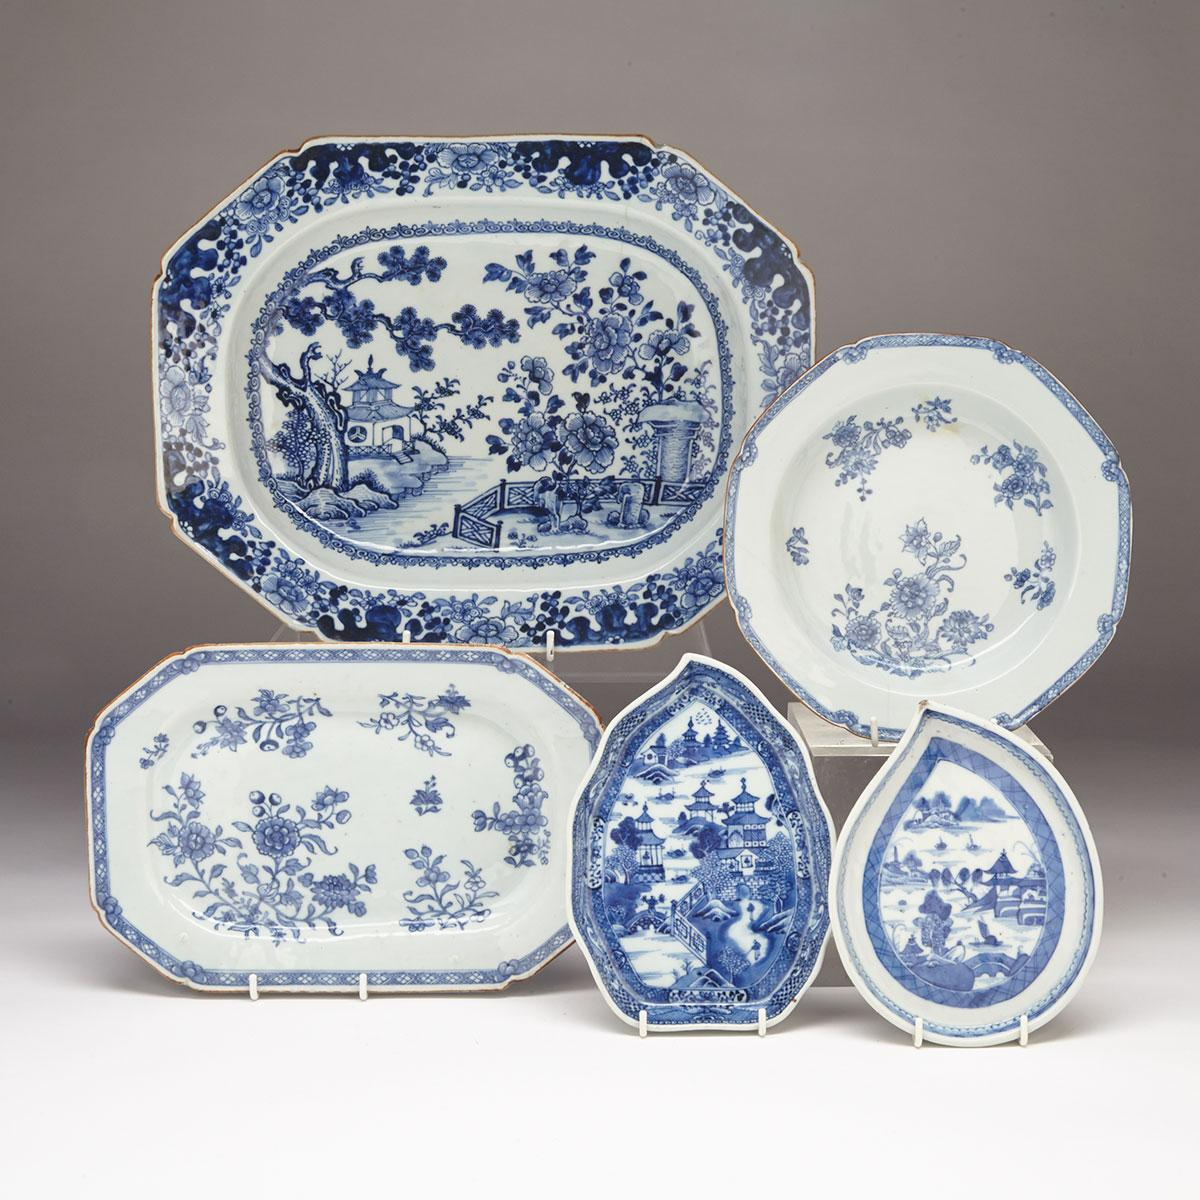 Five Export Blue and White Porcelain Wares, 18th/19th Century